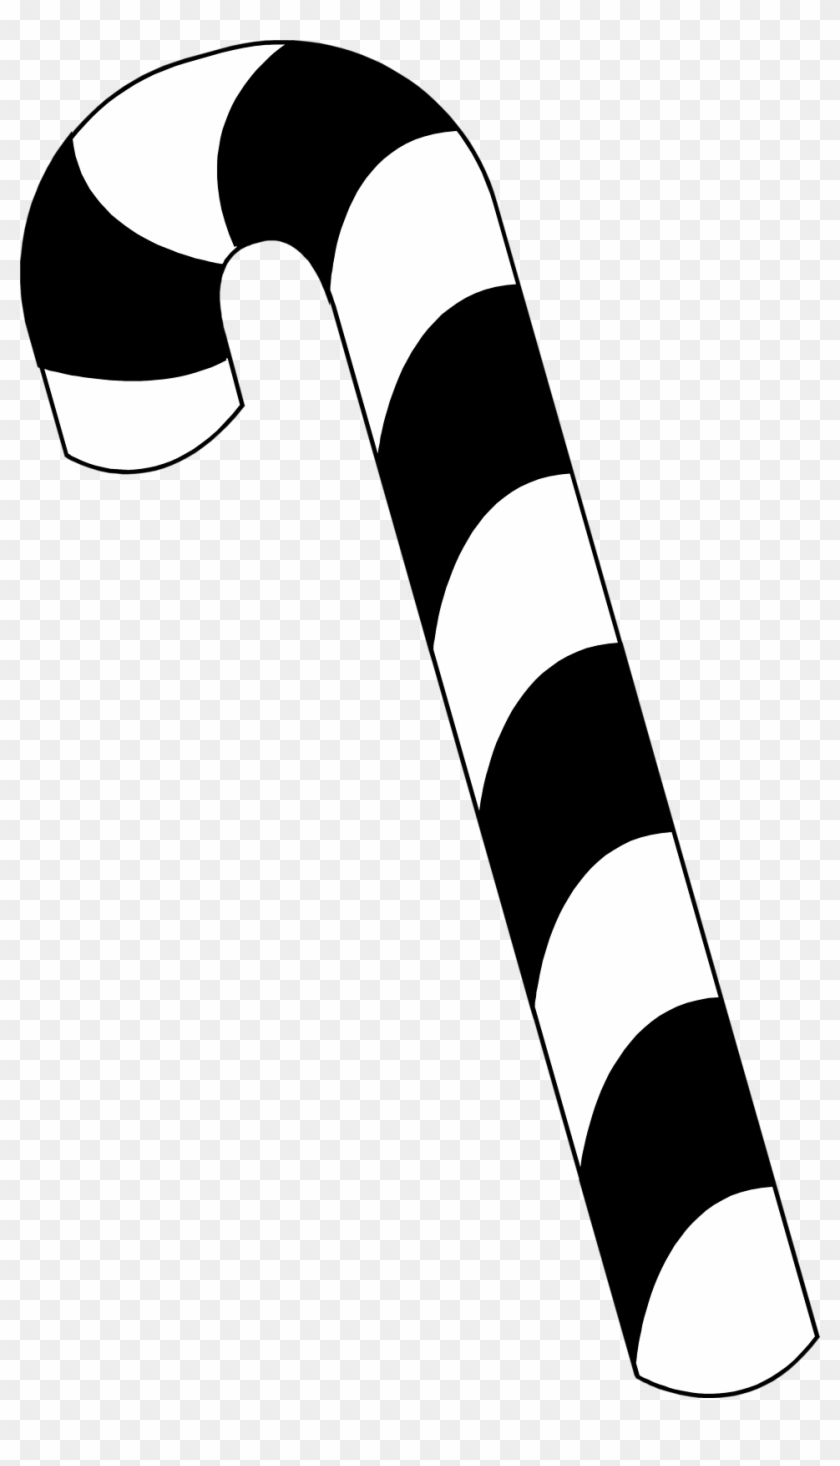 medium resolution of candy cane clipart black and white candy cane black and white